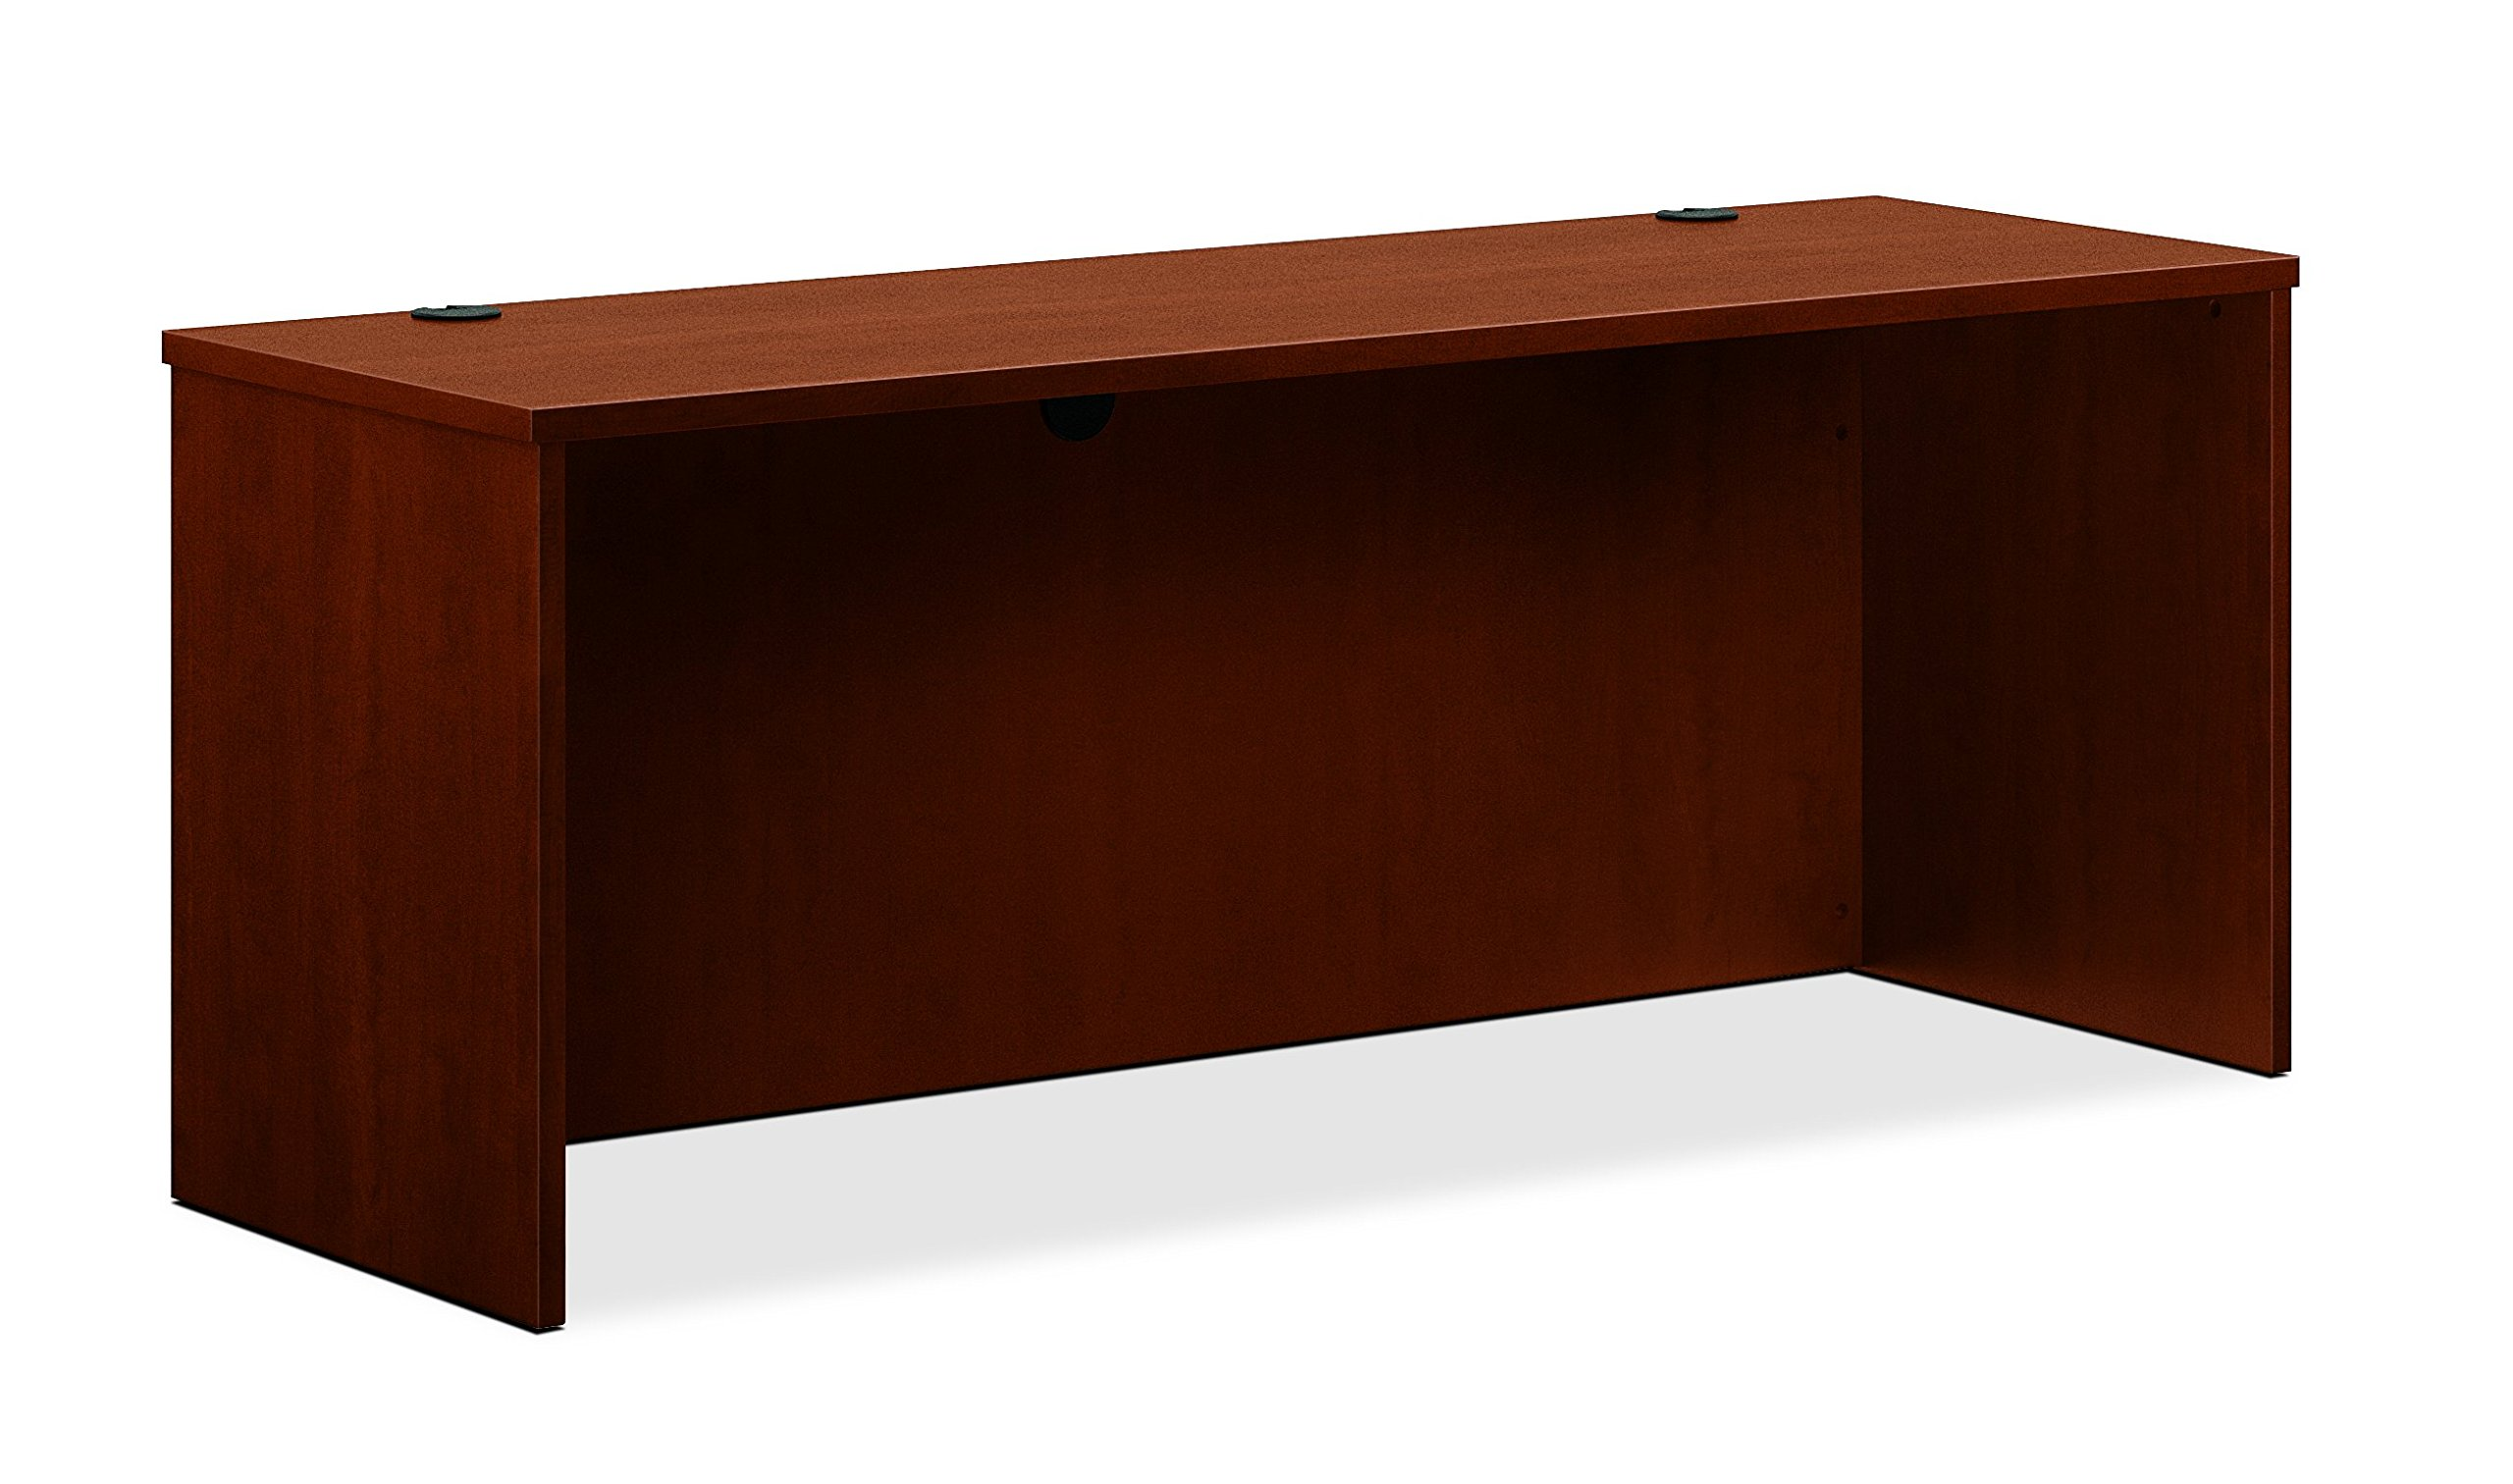 basyx by HON BL Laminate Series Credenza Shell - Desk Shell for Office,  72w x 24d x 29h, Medium Cherry (HBL2121)